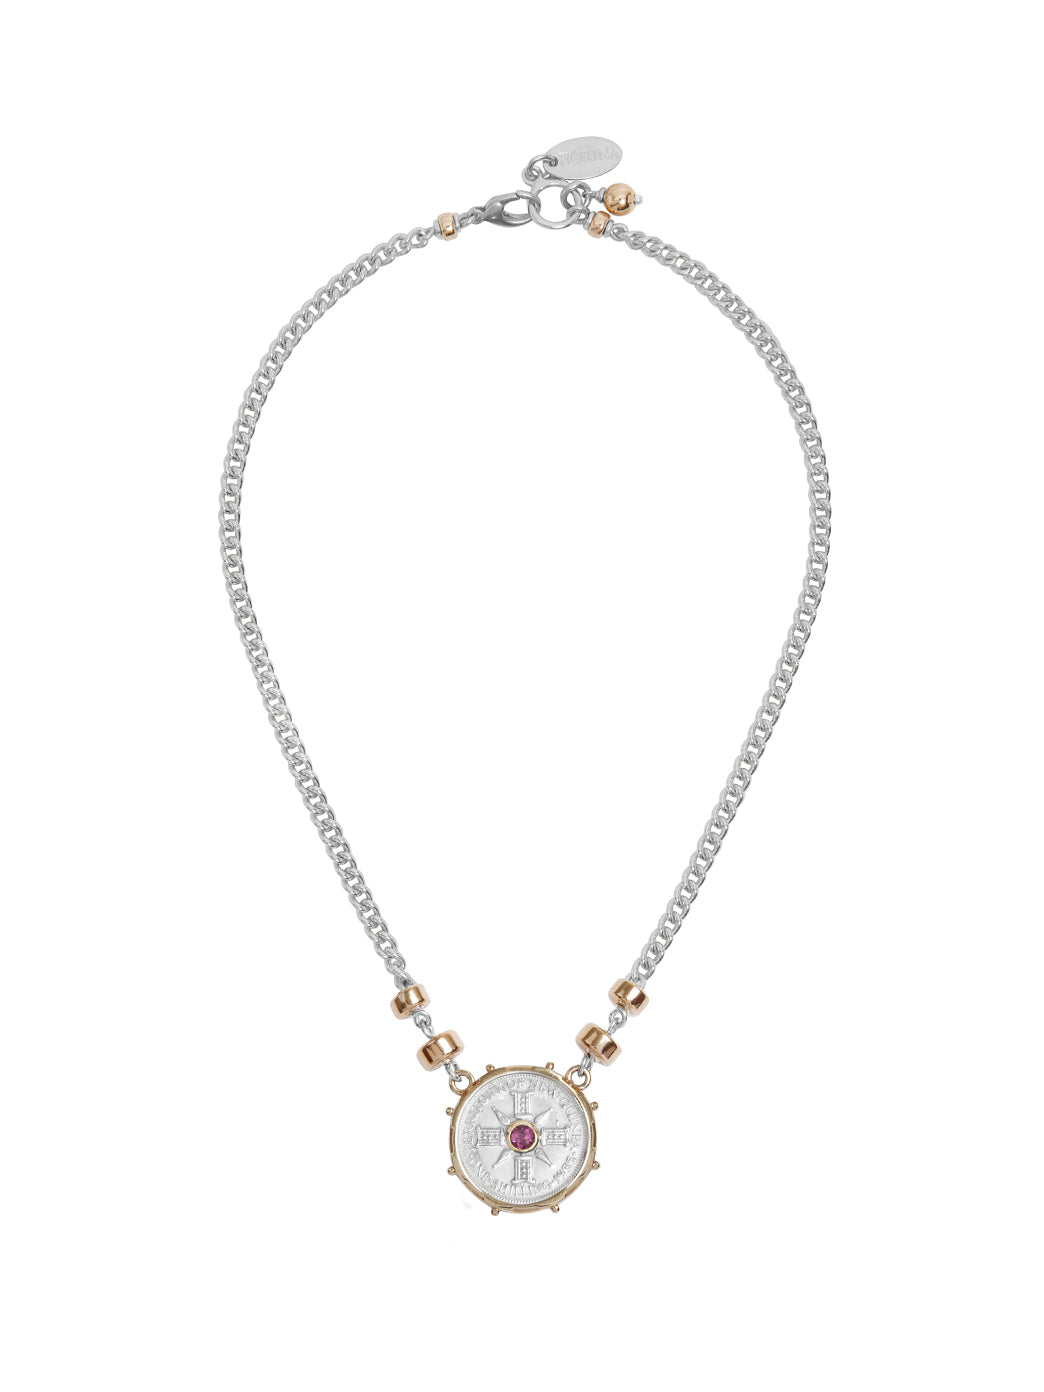 Fiorina Jewellery Jewel Gem Necklace Pink Tourmaline